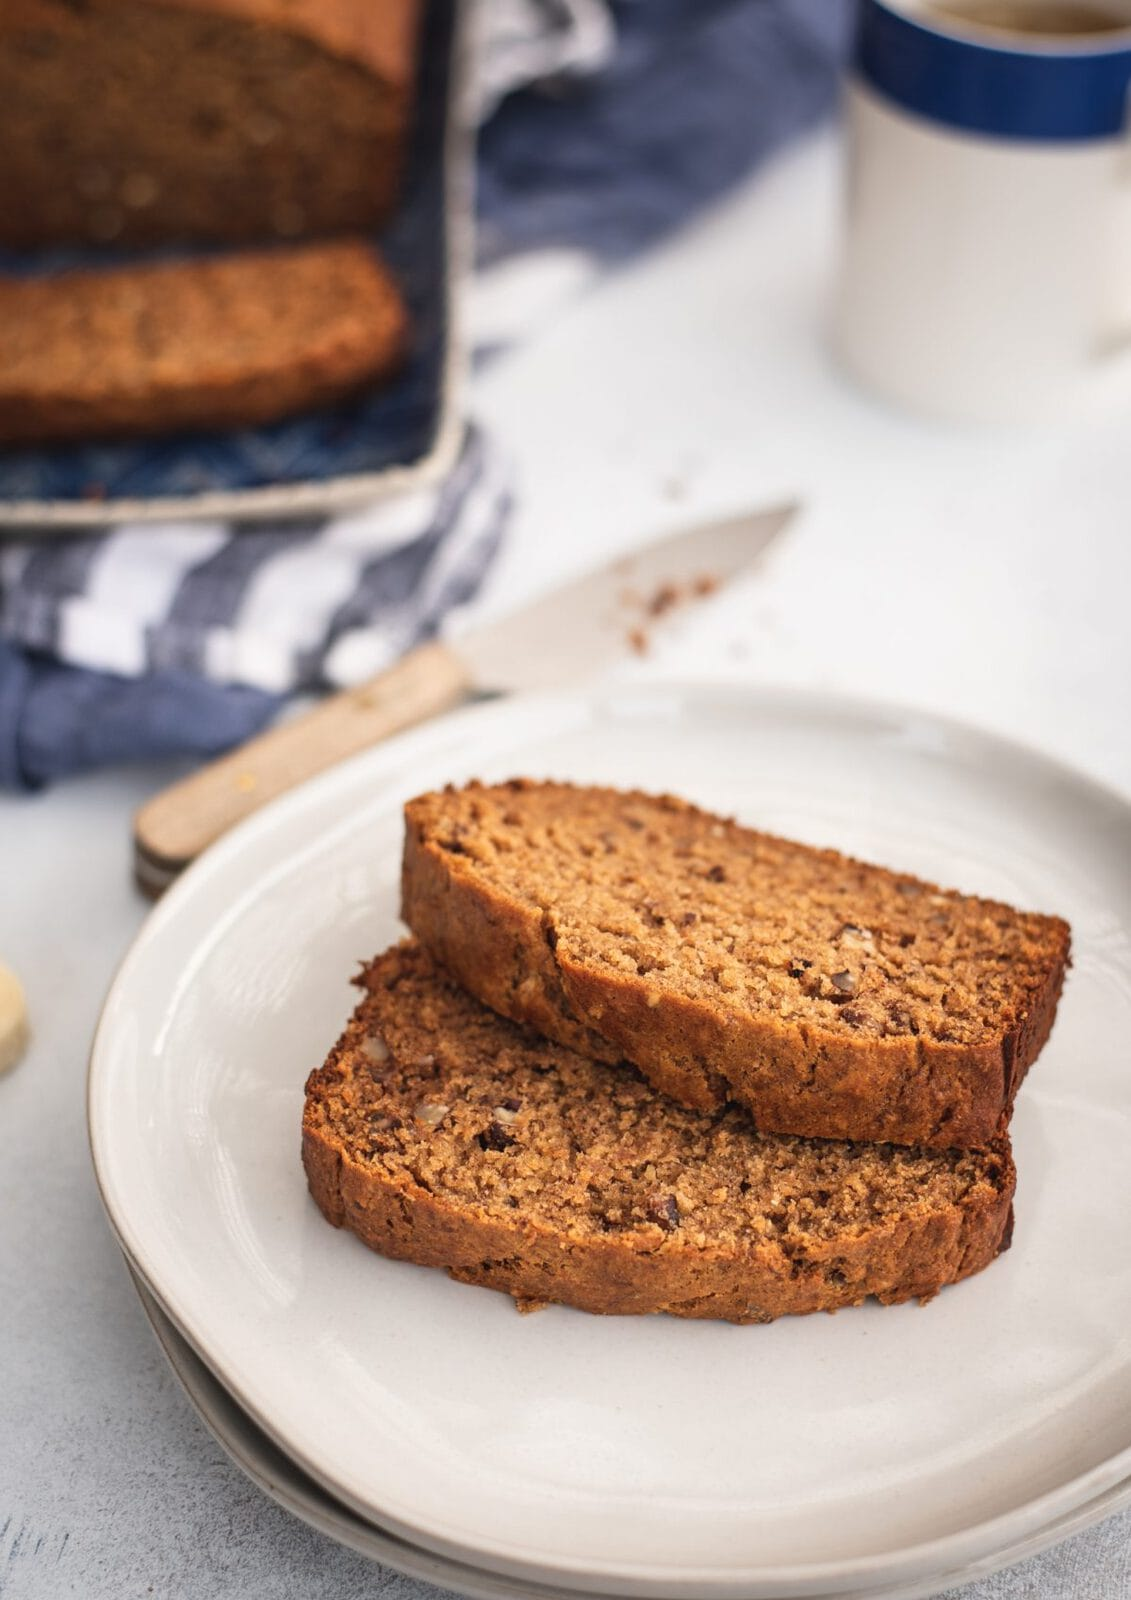 Plate with two slices of healthy banana bread